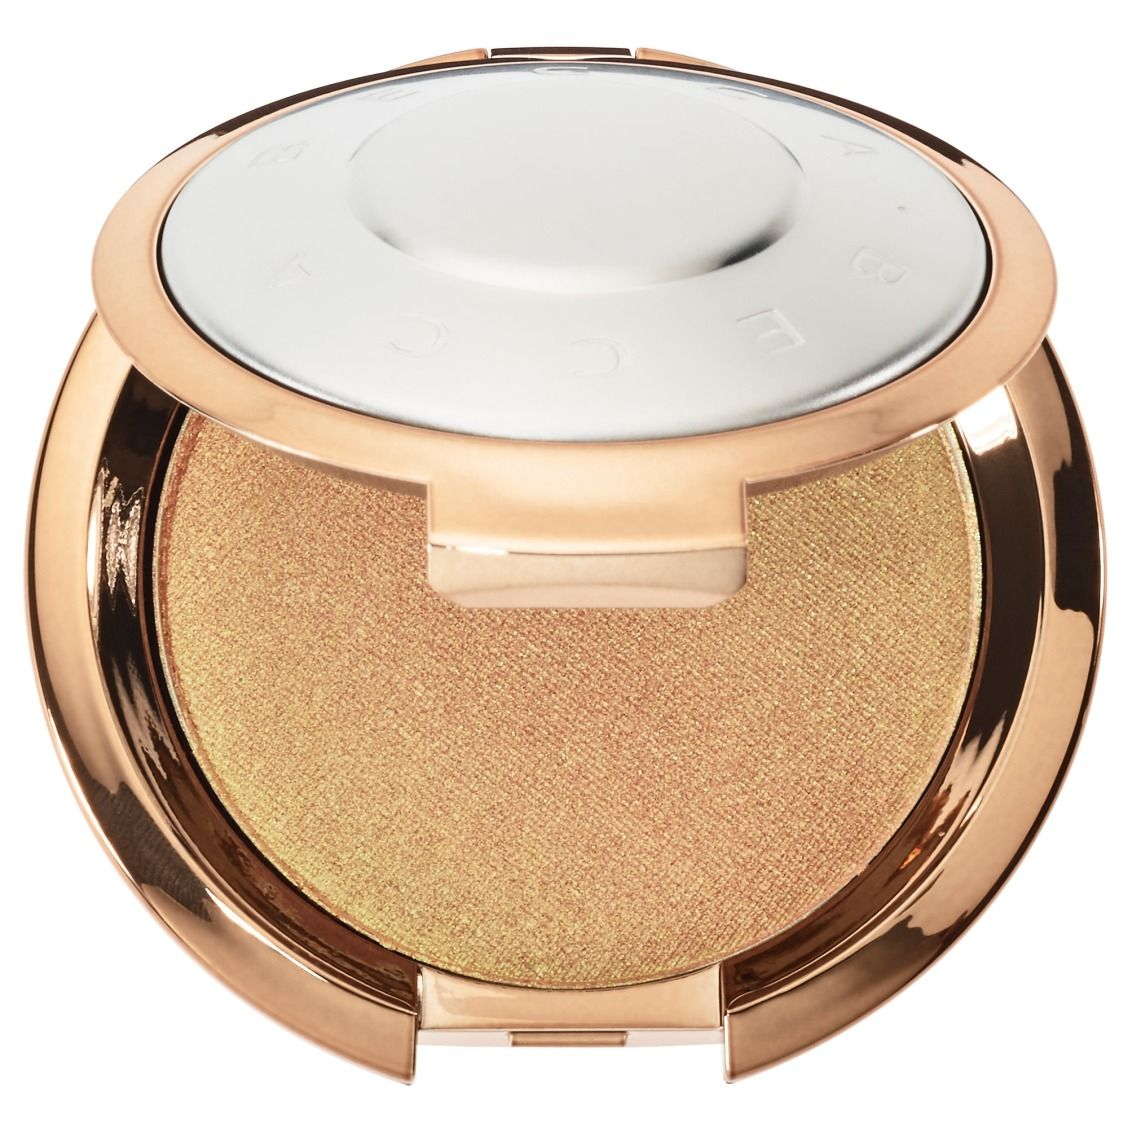 New At Sephora Becca Light Chaser Highlighter Becca Cosmetics Glossy Makeup Holographic Highlighter